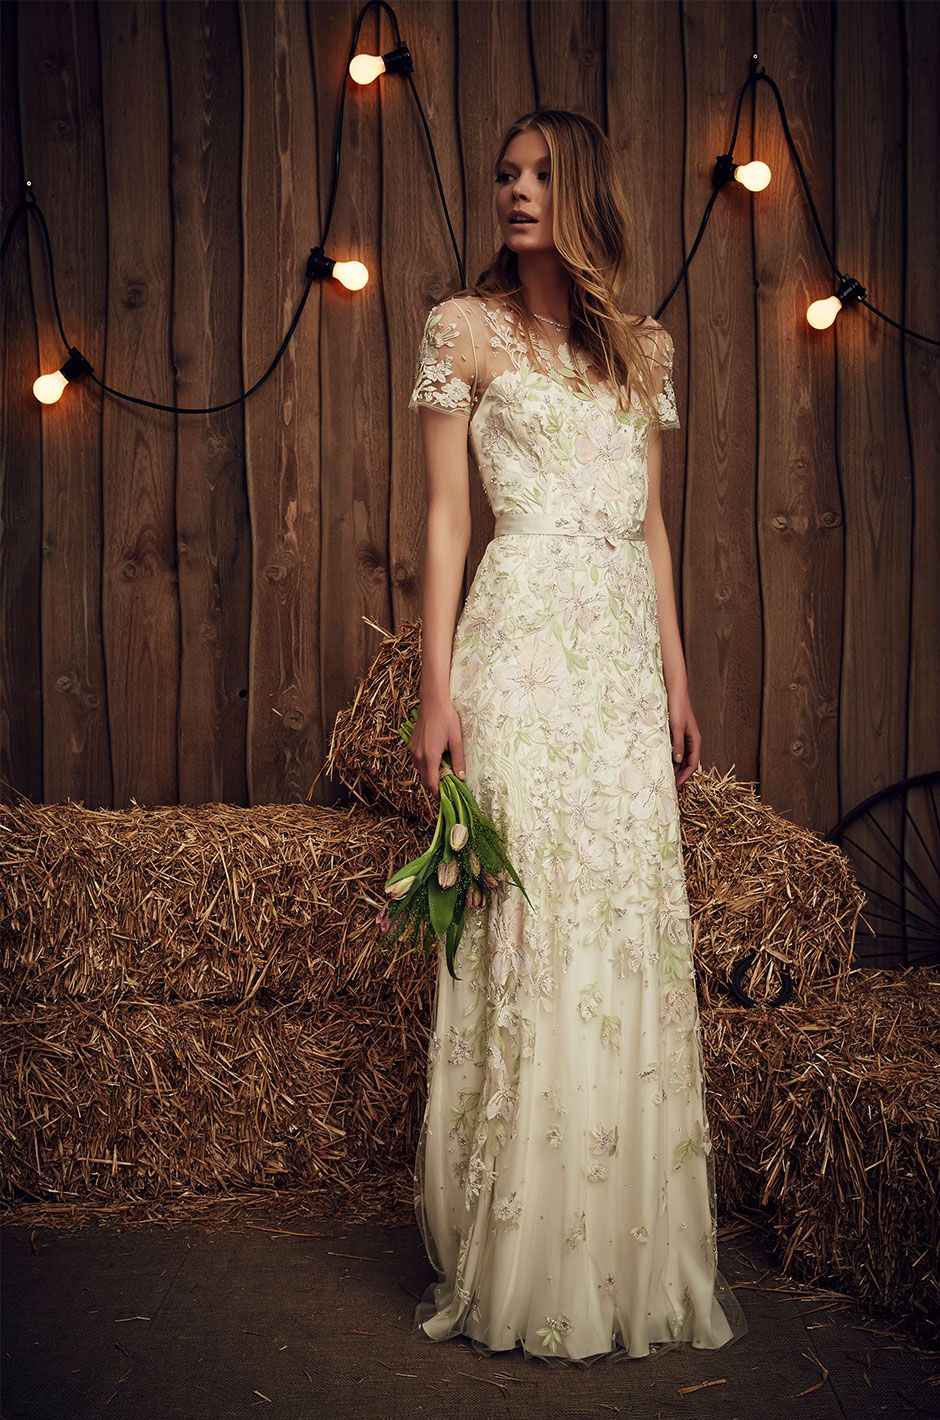 The Bridal Collection Harrogate | Character Inspiration | Pinterest ...